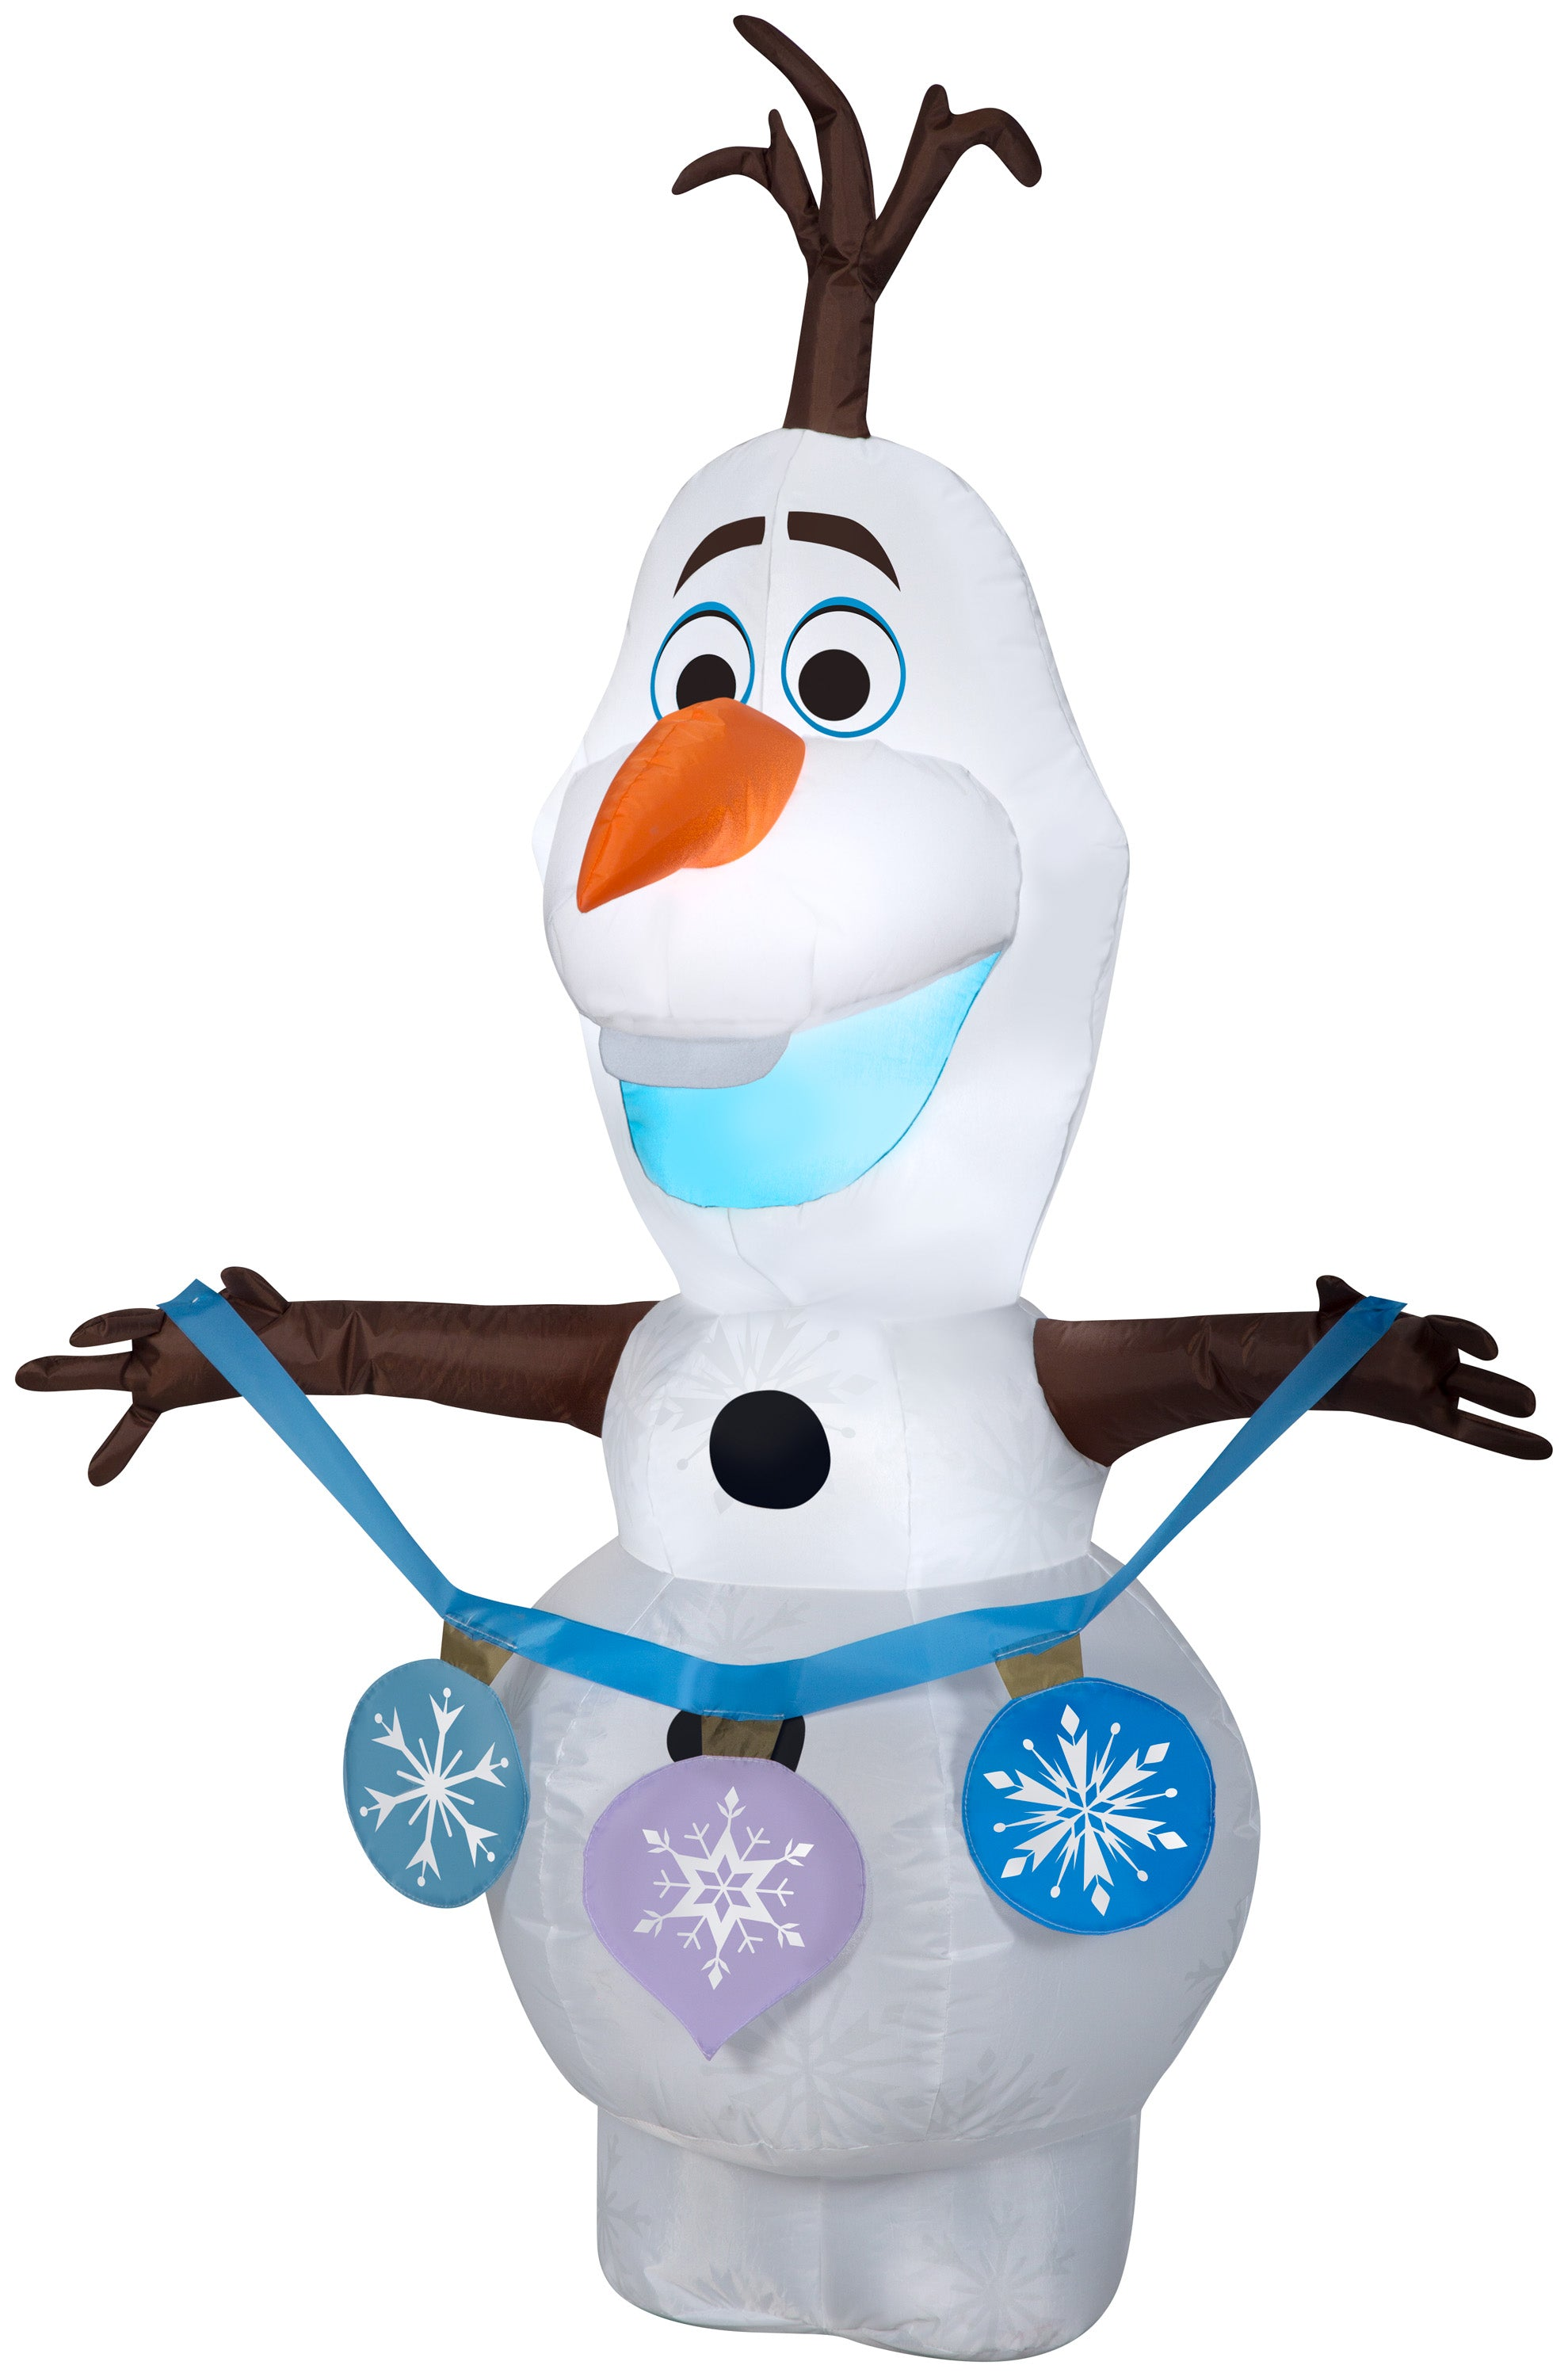 Gemmy Christmas Airblown Inflatable Frozen 2 Olaf Holding String of Ornaments Disney, 4 ft Tall